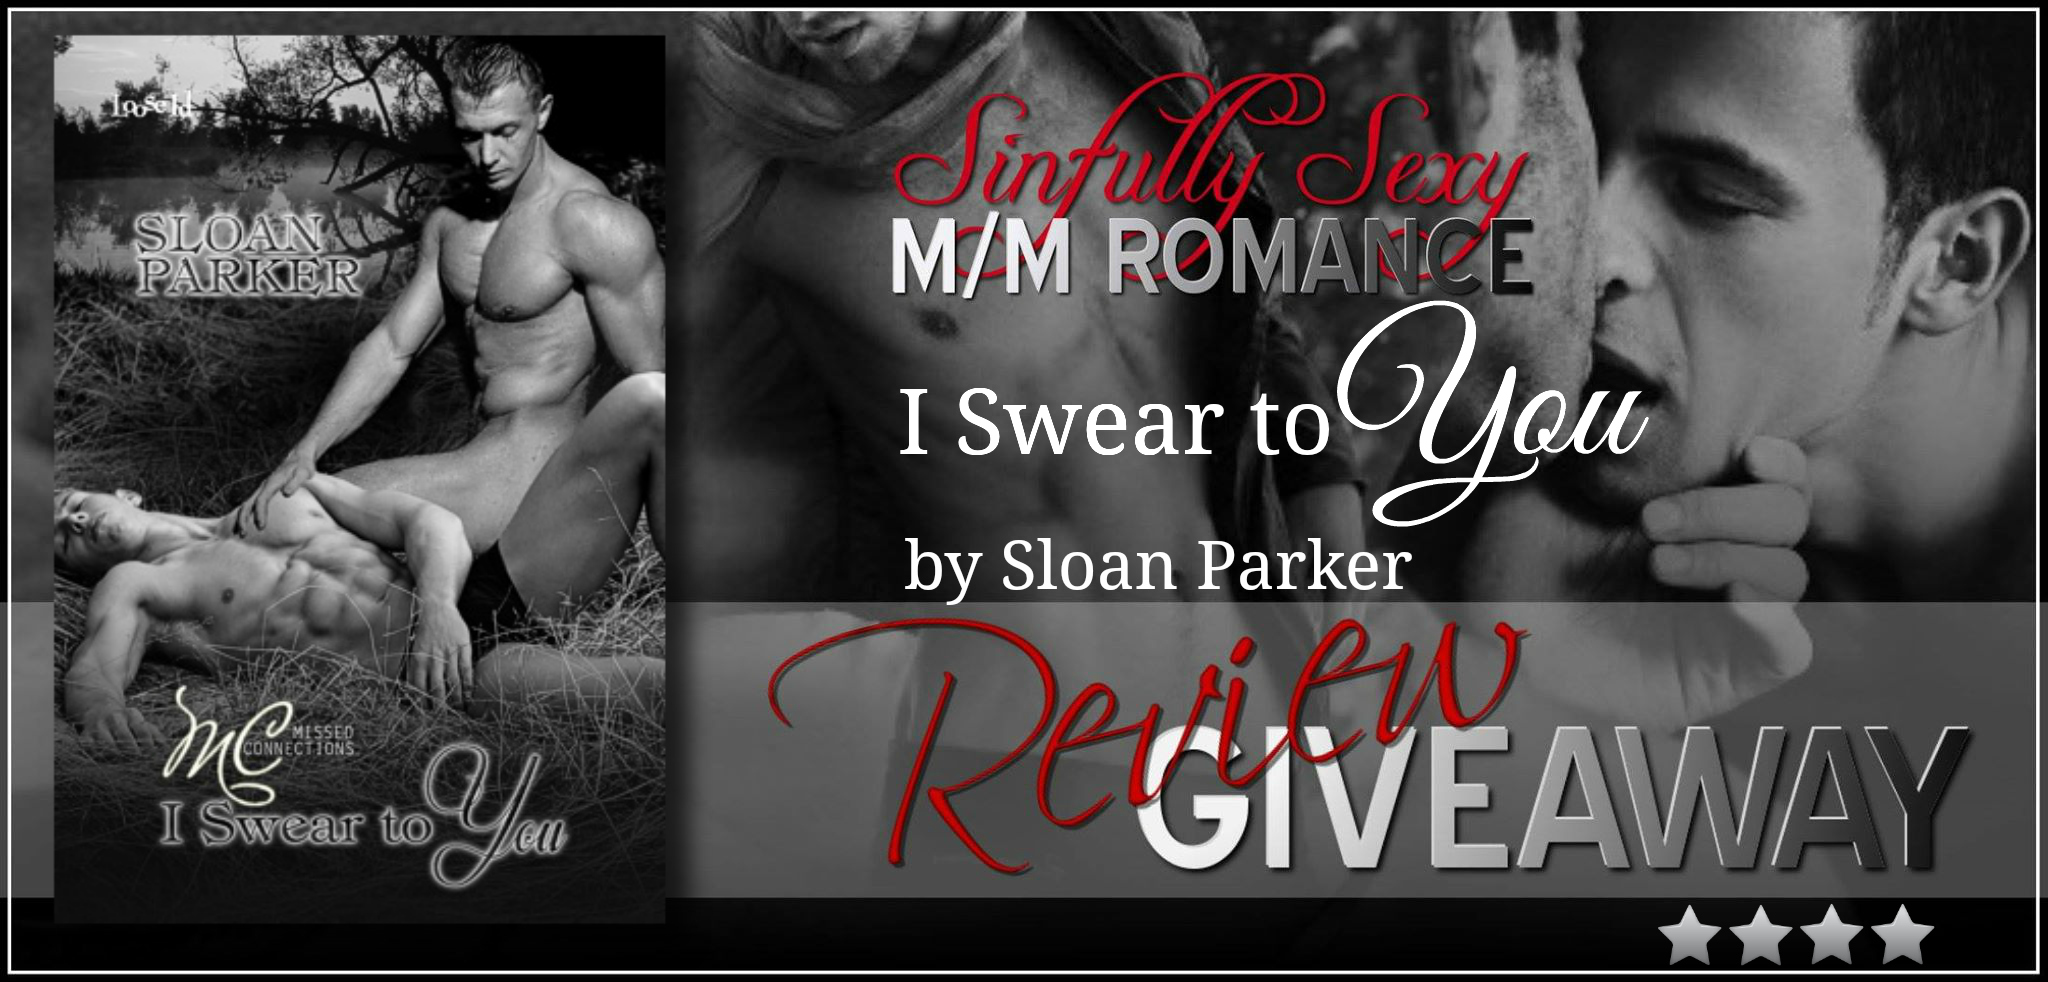 I Swear to You Giveaway